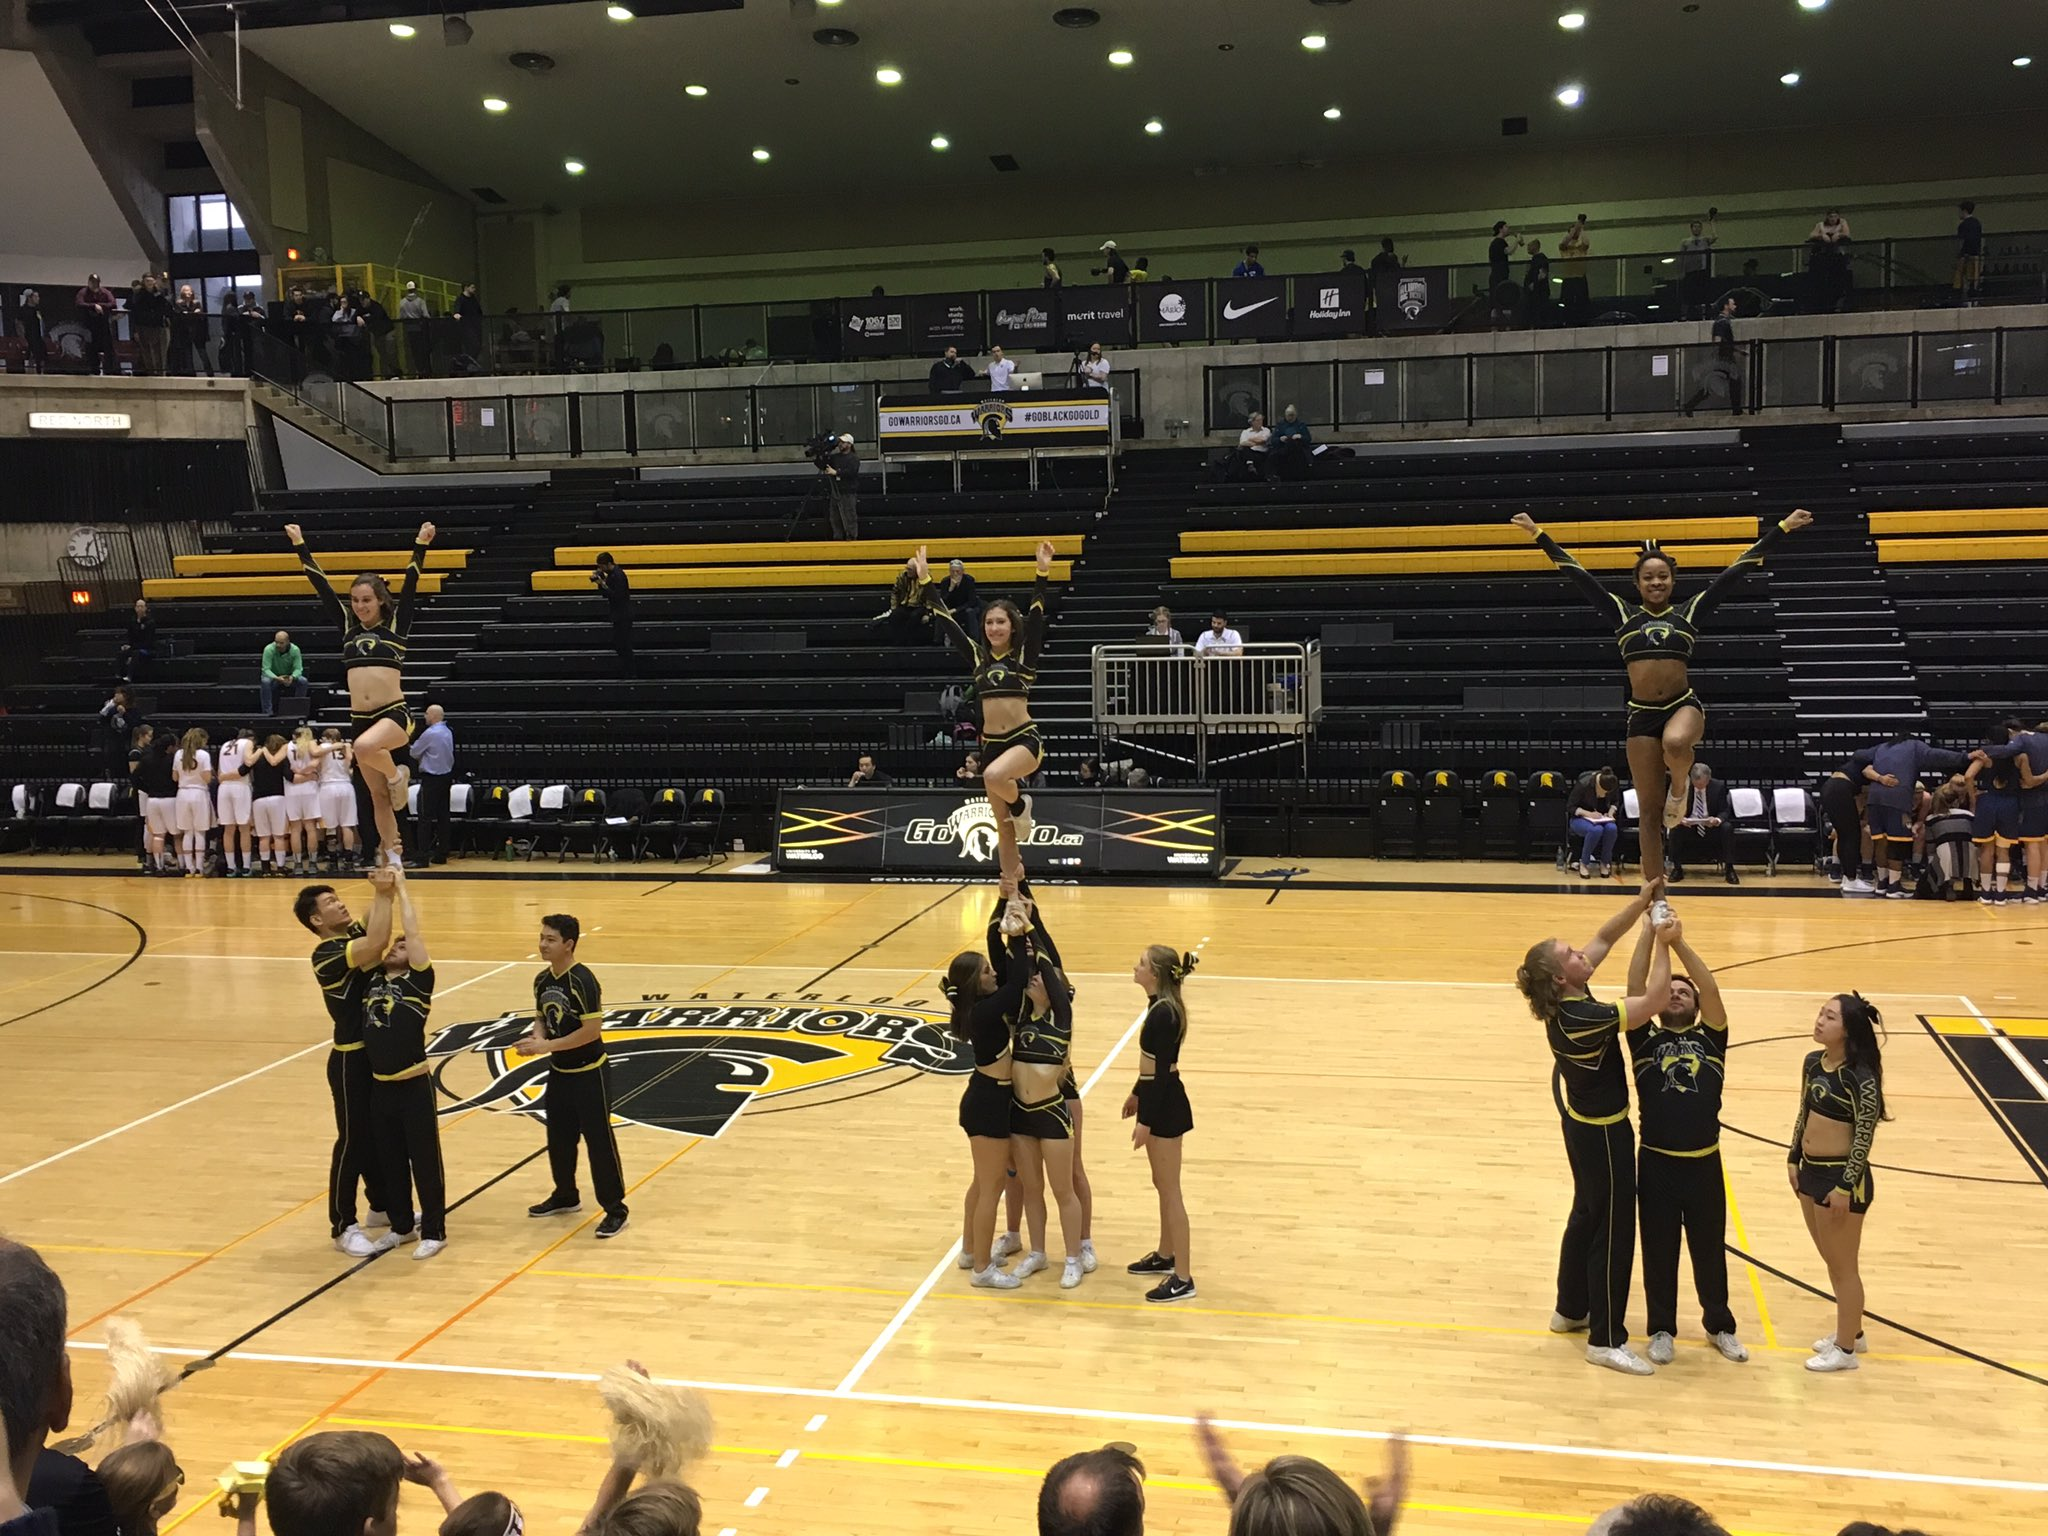 Nice to see the cheer team show their stuff during a time-out after two great plays by the Warriors! This #UWaterlooFAD game is INTENSE! https://t.co/WJukmn7TxQ